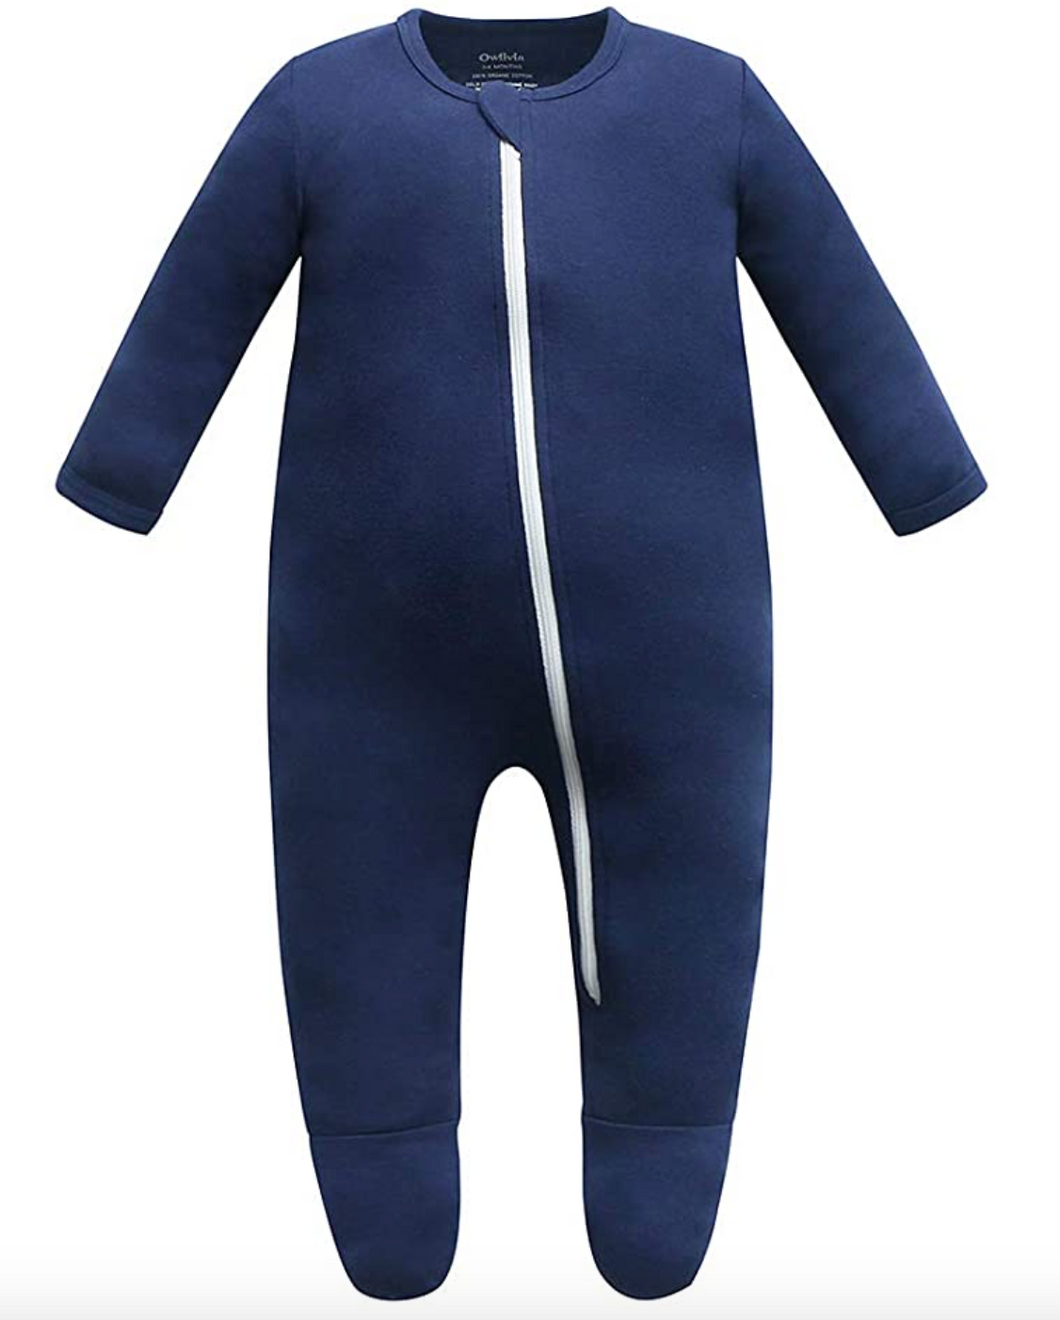 100% Organic Cotton Zip Footed Pajamas - Navy